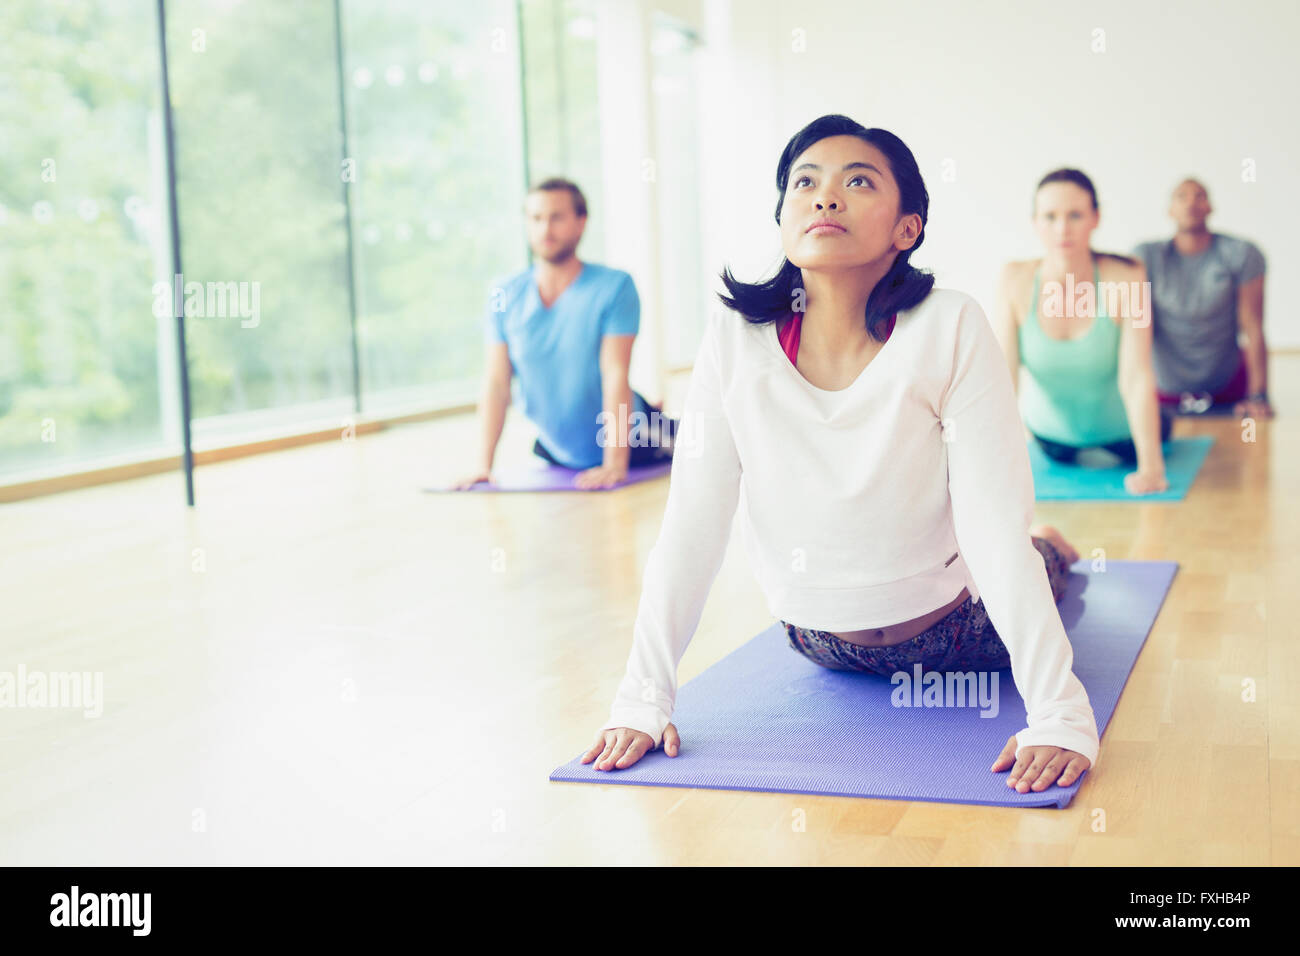 Woman in upward facing dog position in yoga class - Stock Image